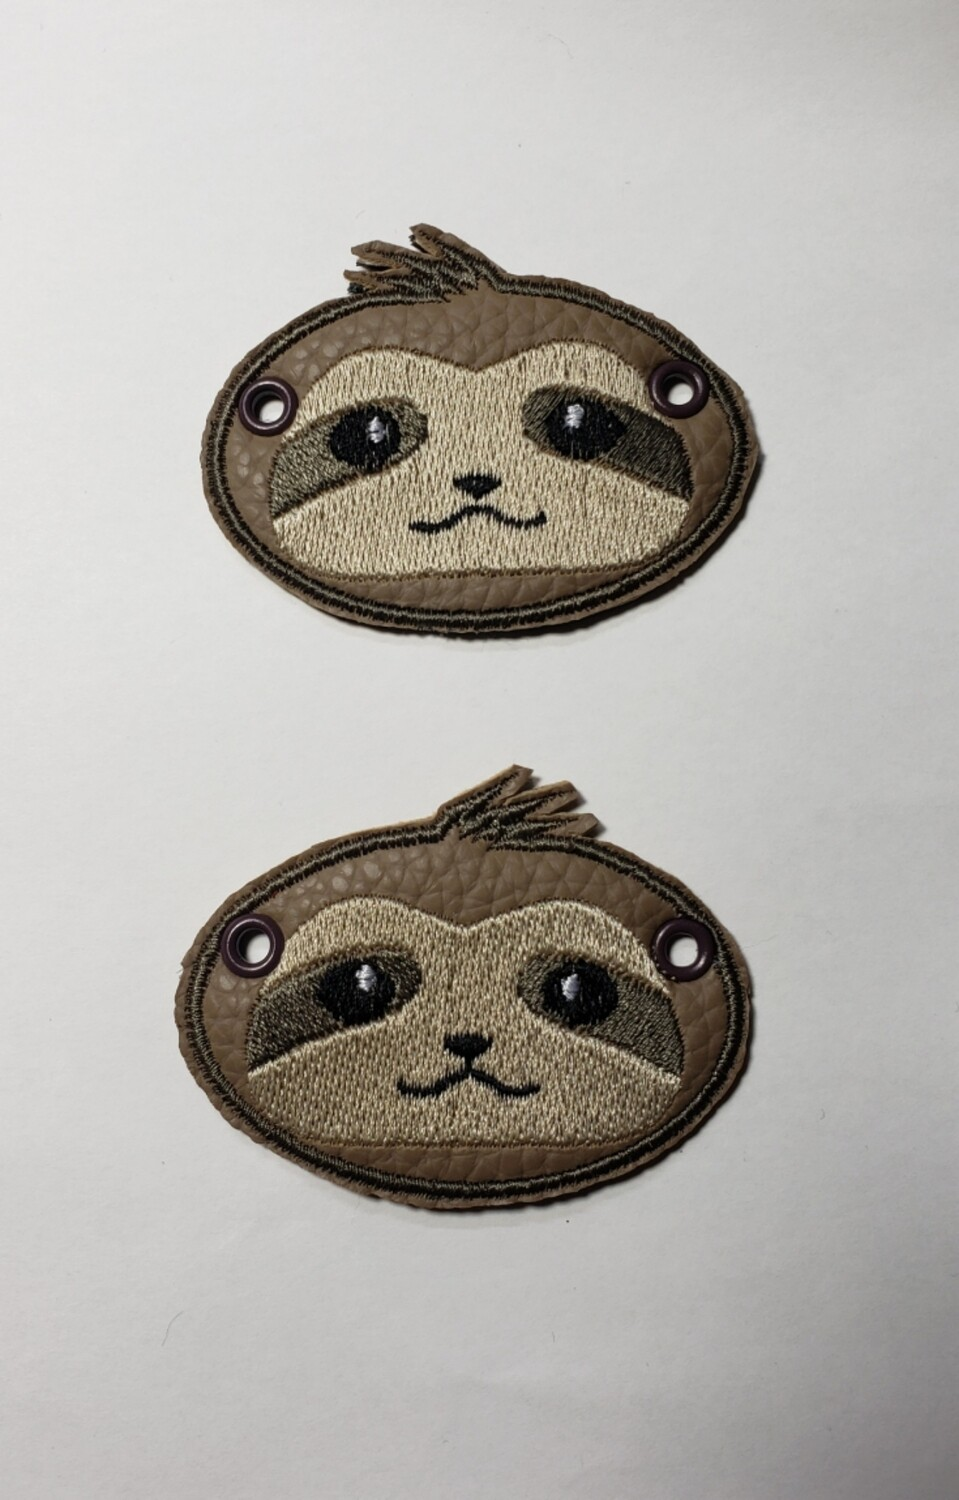 Sloth lace accessories